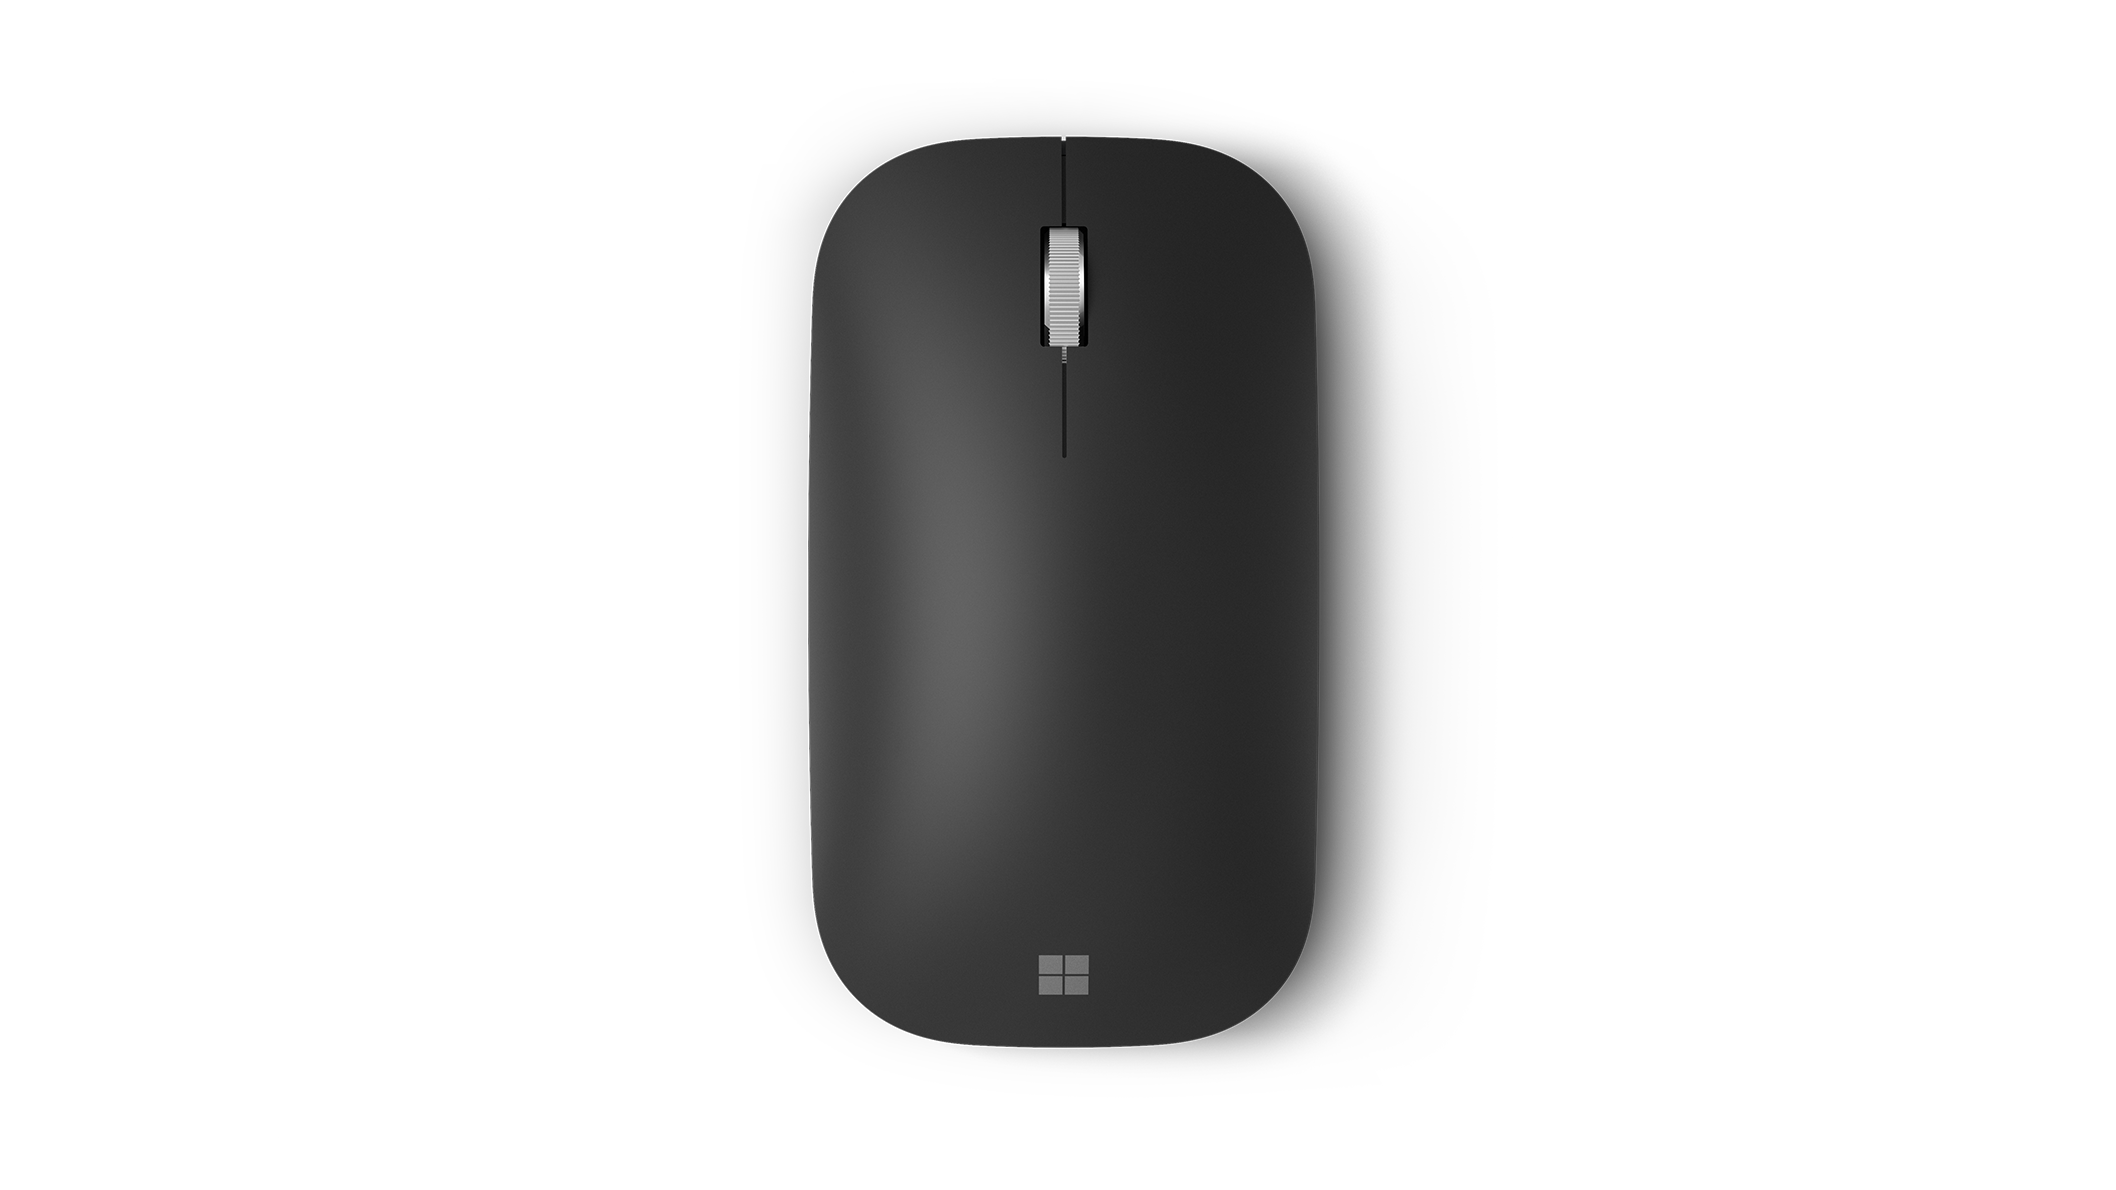 Closeup birdseye view of the Surface Mobile Mouse